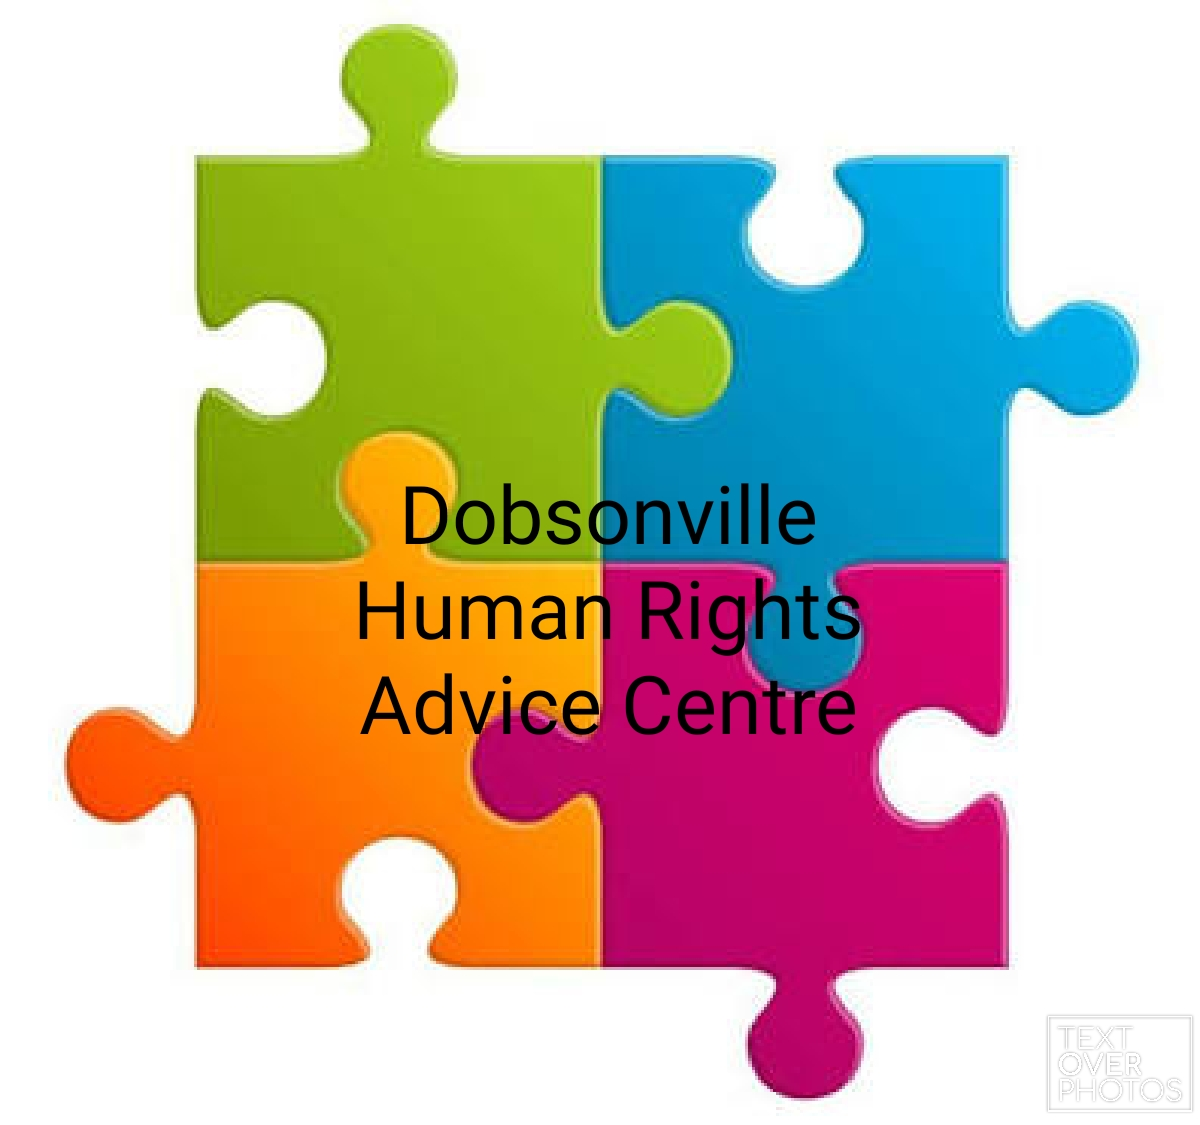 Dobsonville Human Rights Advice Centre